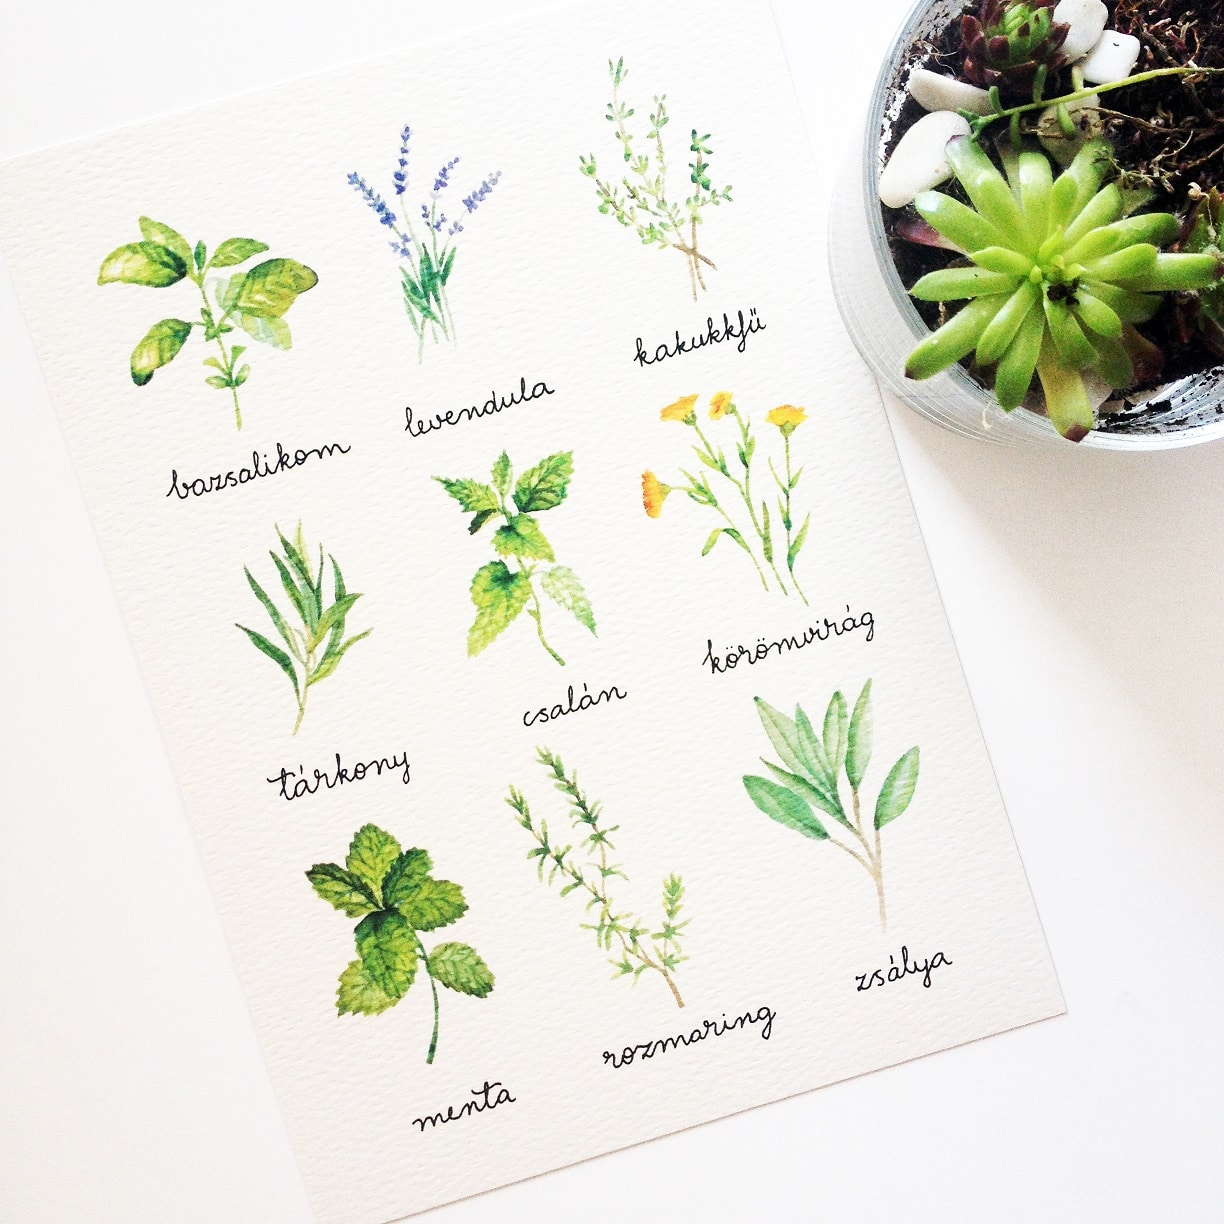 Watercolor florals - herbs